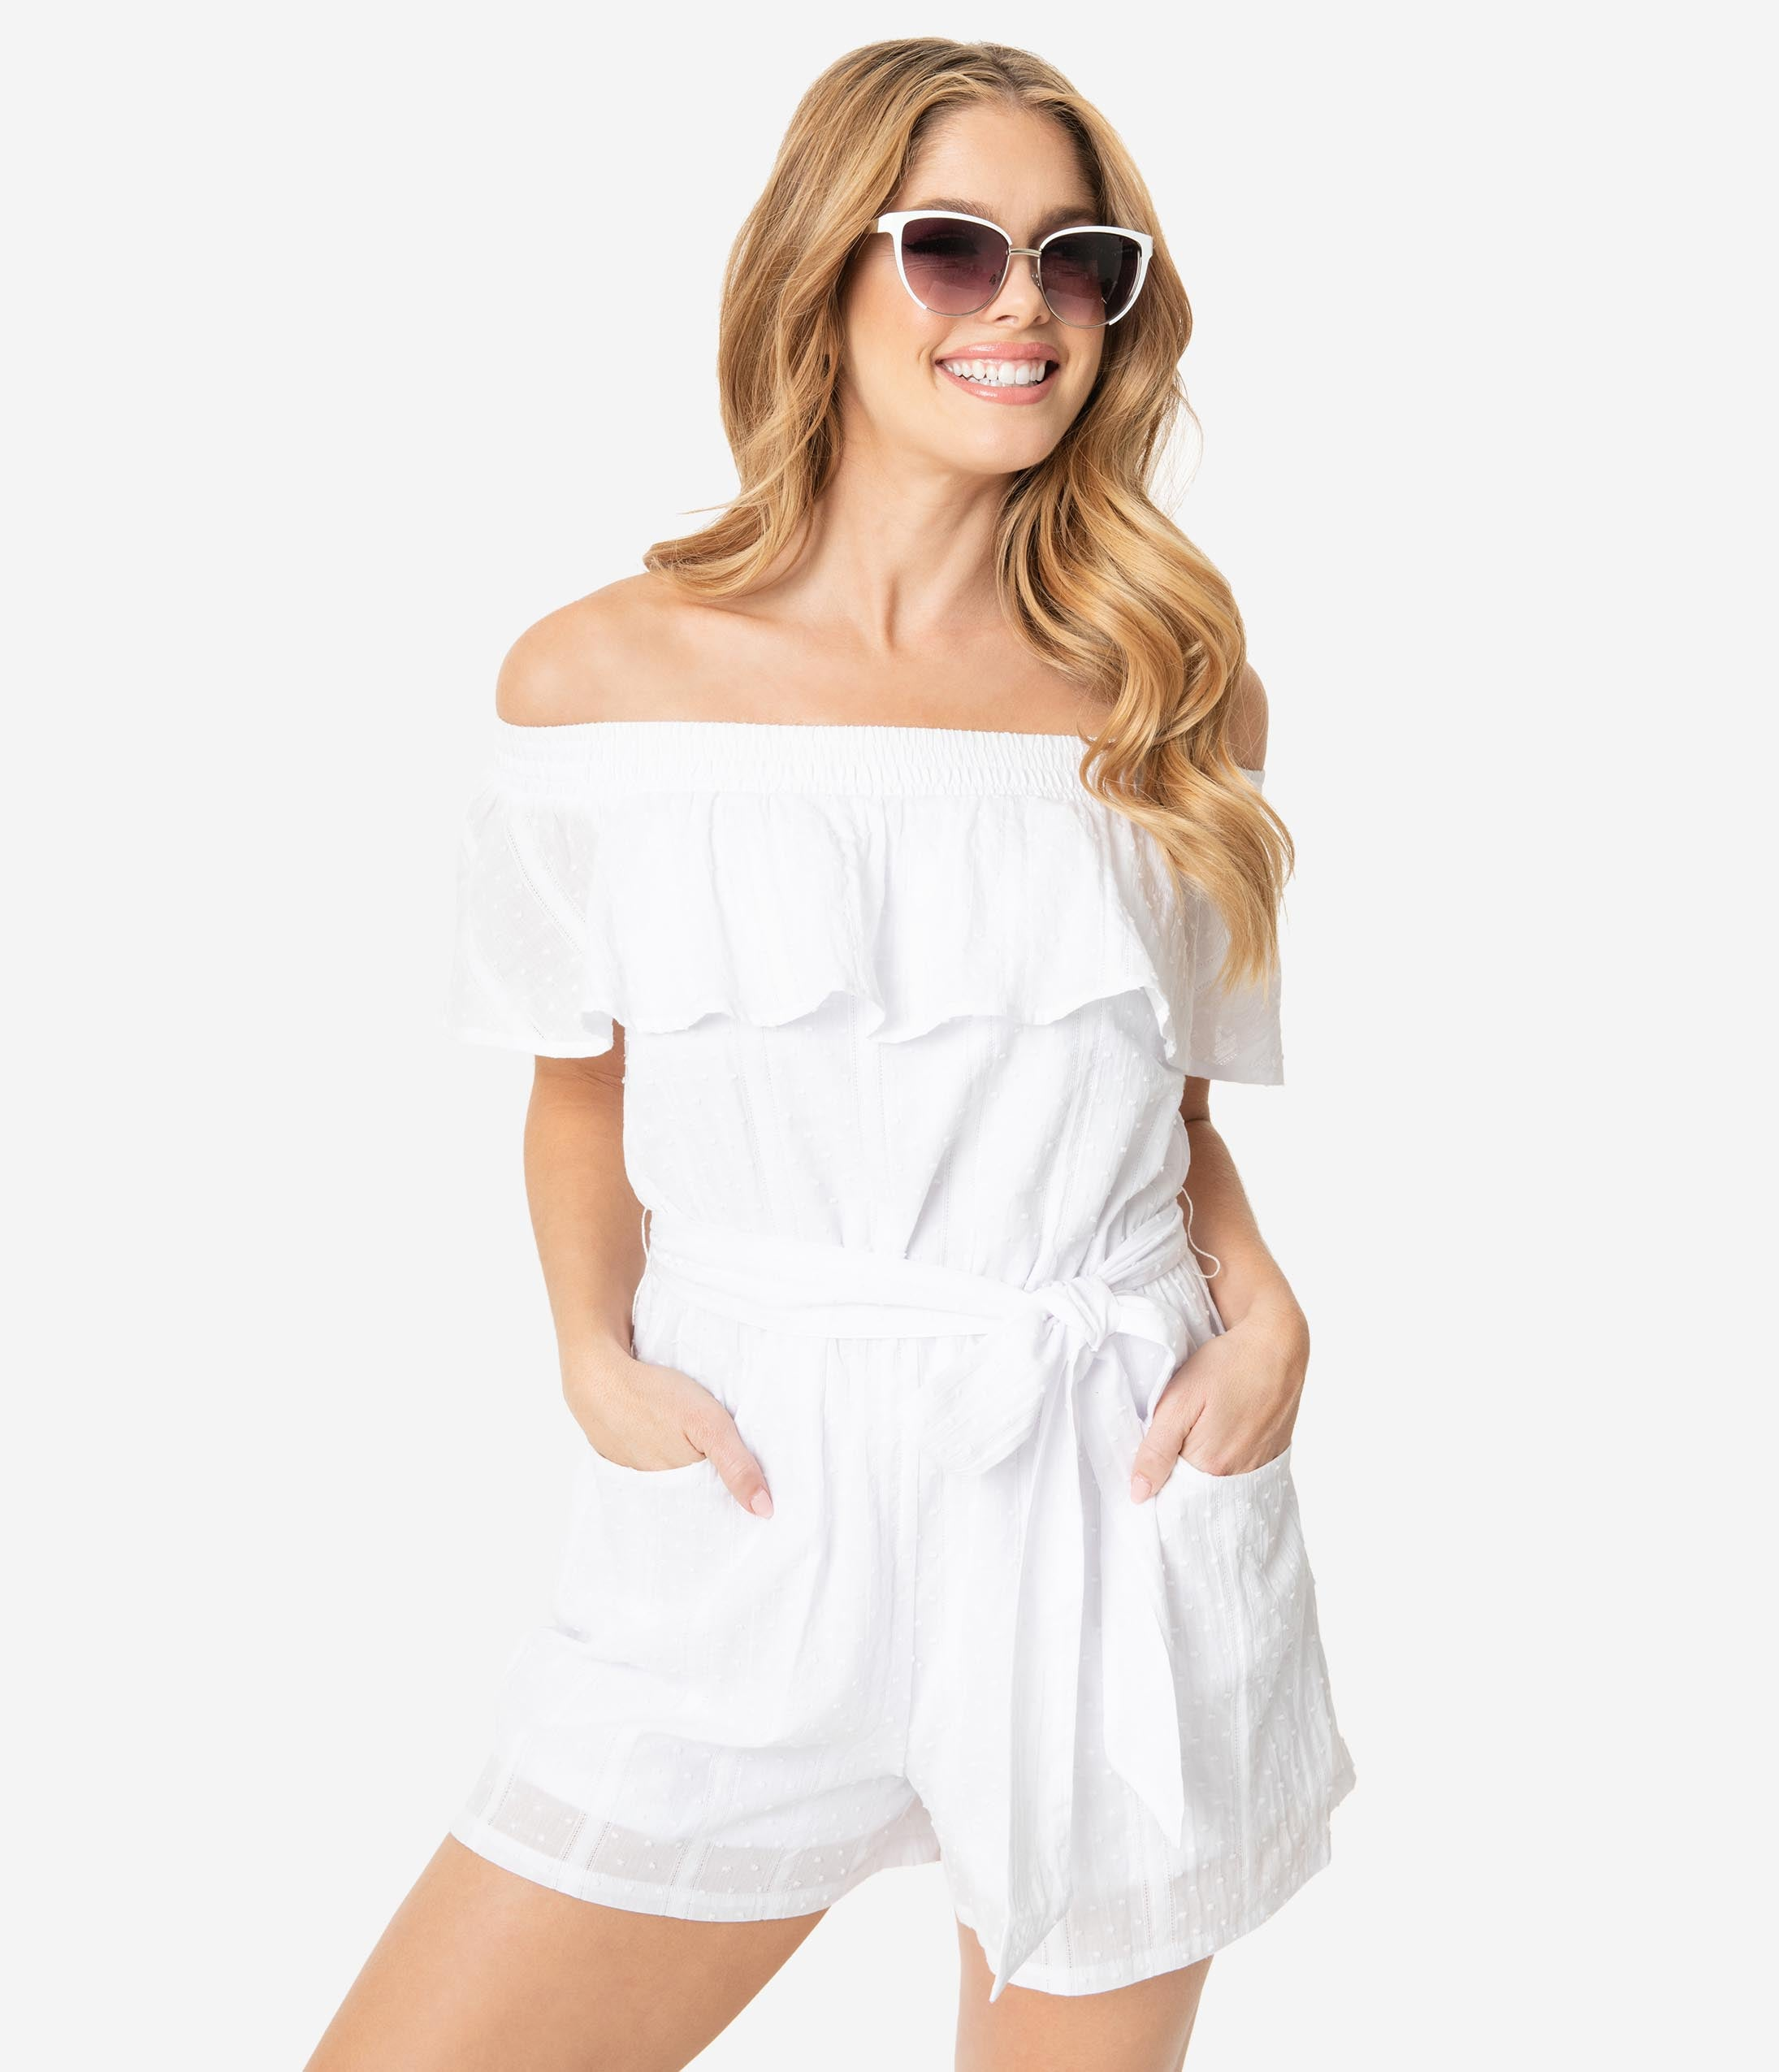 Vintage Rompers, Playsuits | Retro, Pin Up, Rockabilly Playsuits Unique Vintage White Swiss Dotted Off Shoulder Allie Romper $68.00 AT vintagedancer.com